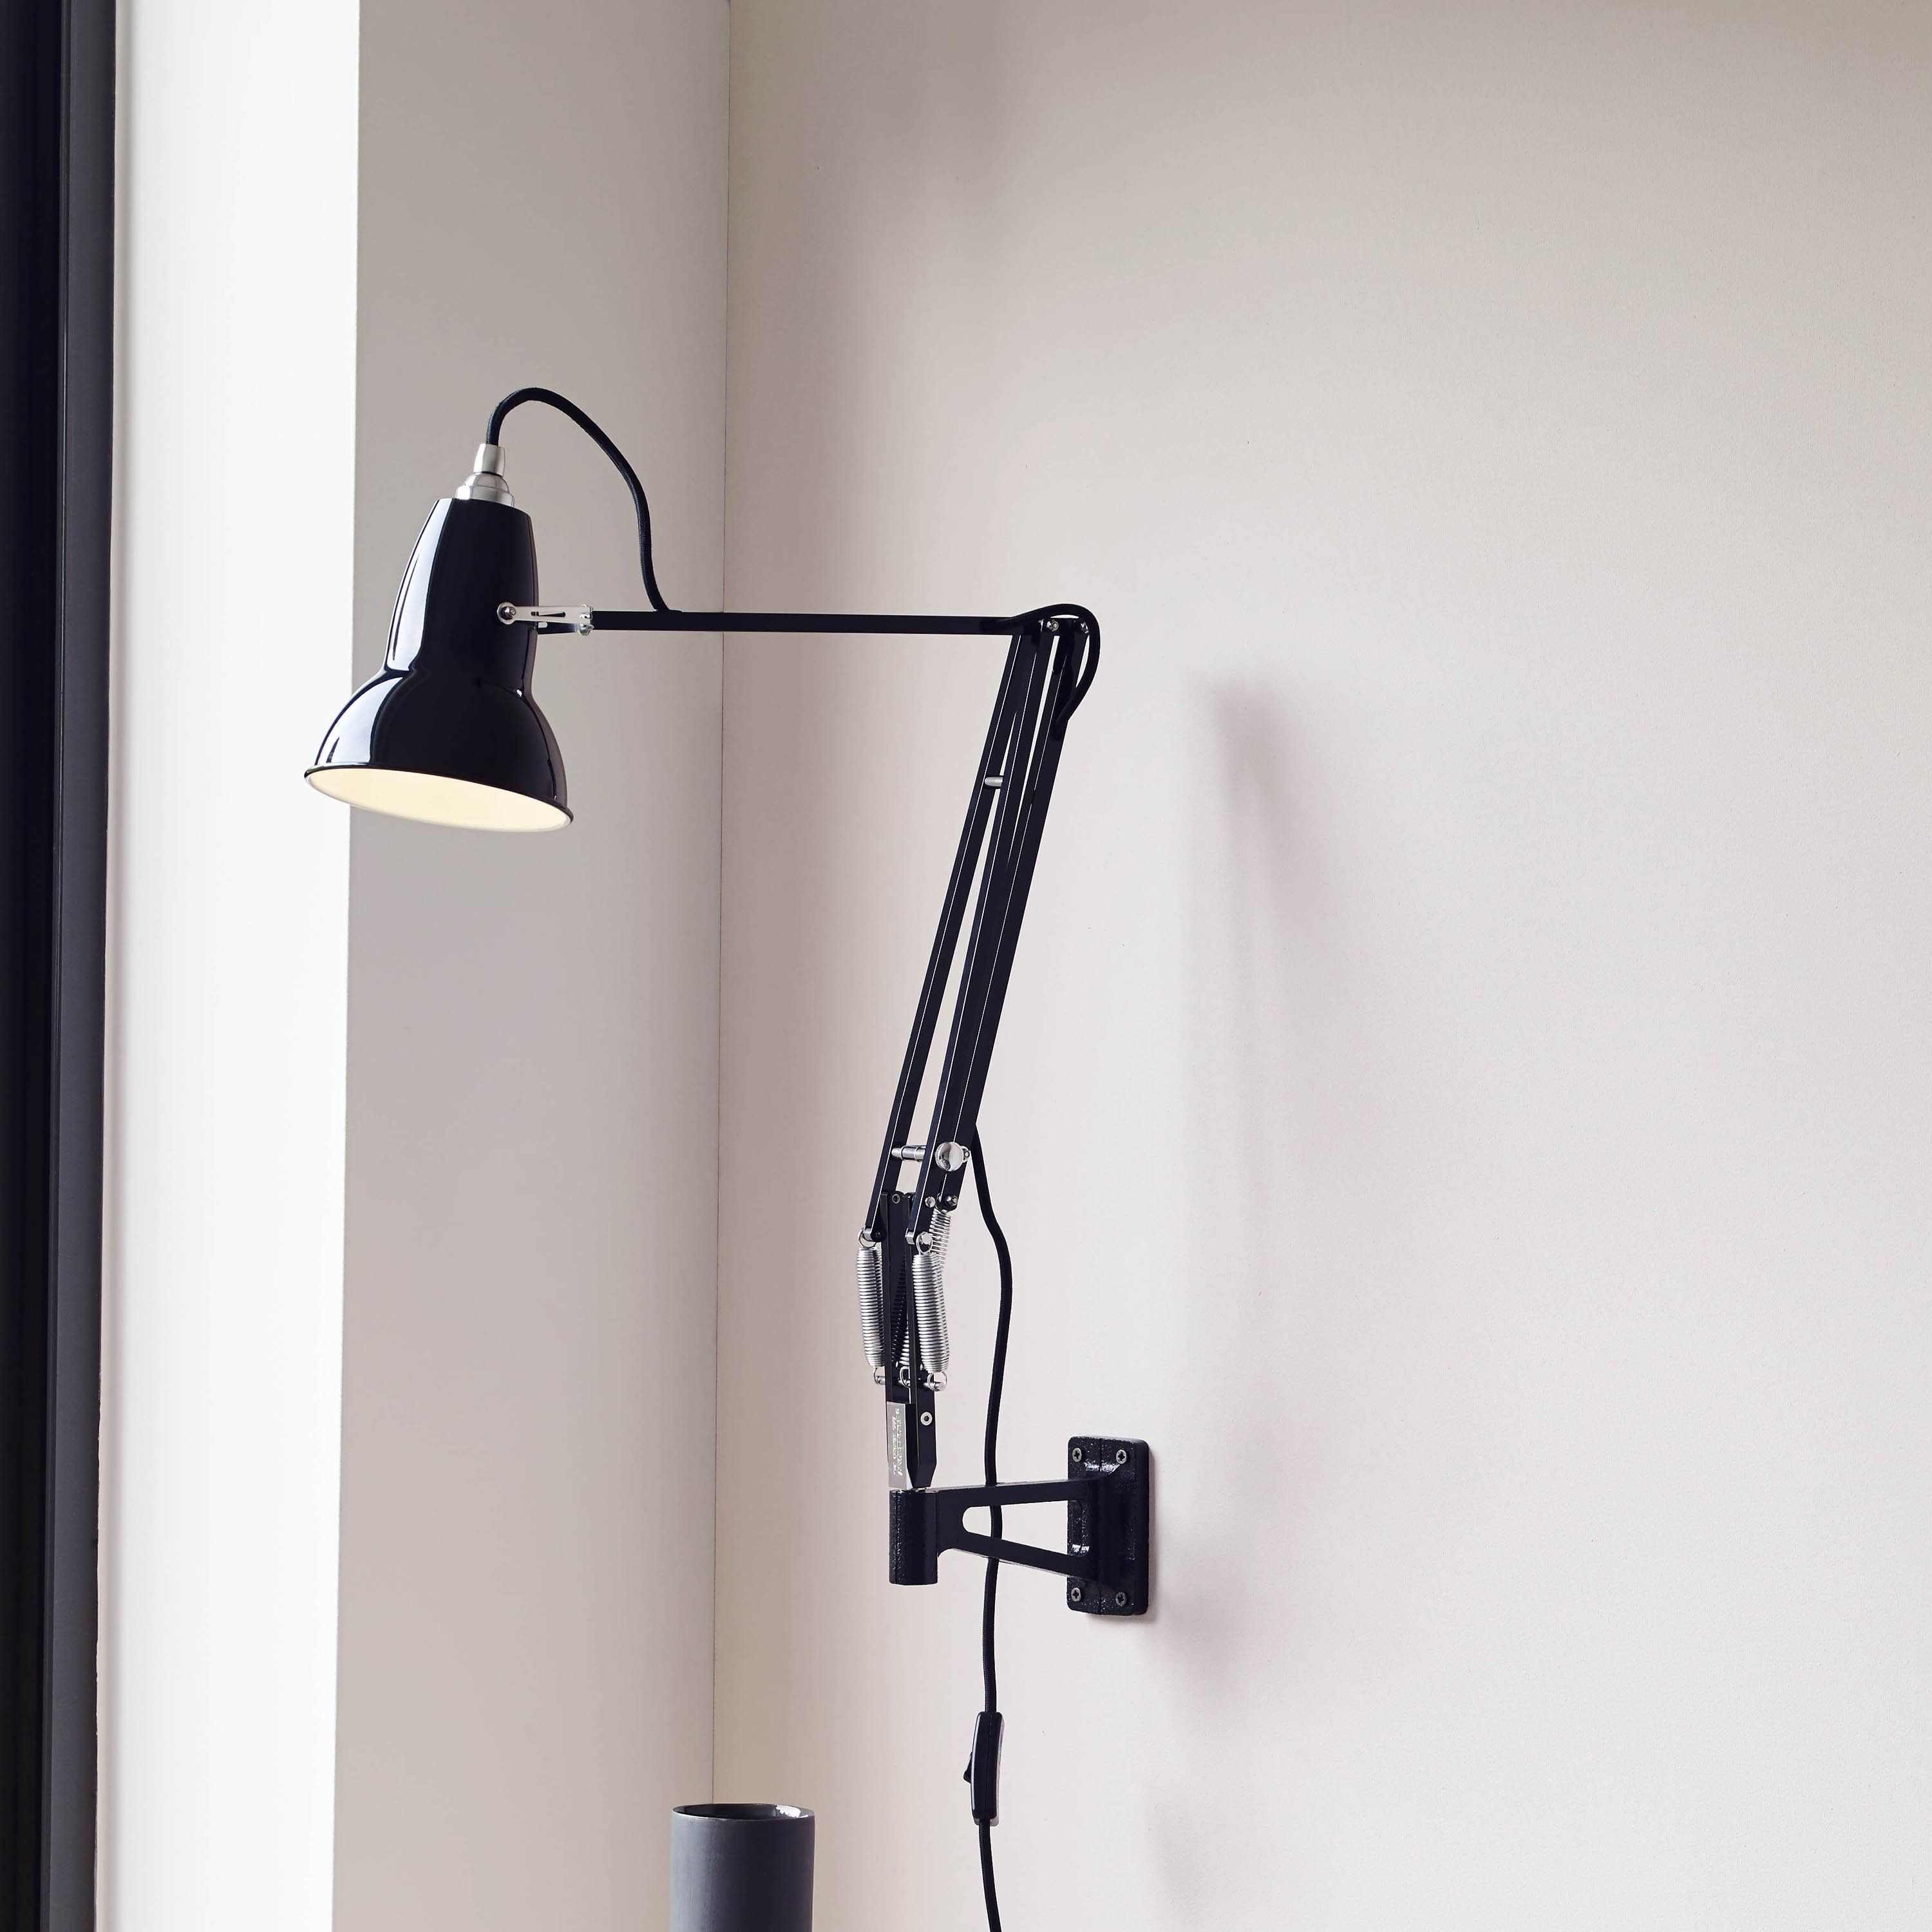 Original 1227 Wall Mounted Lamp Wall Mounted Lamps Swing Arm Wall Lamps Anglepoise